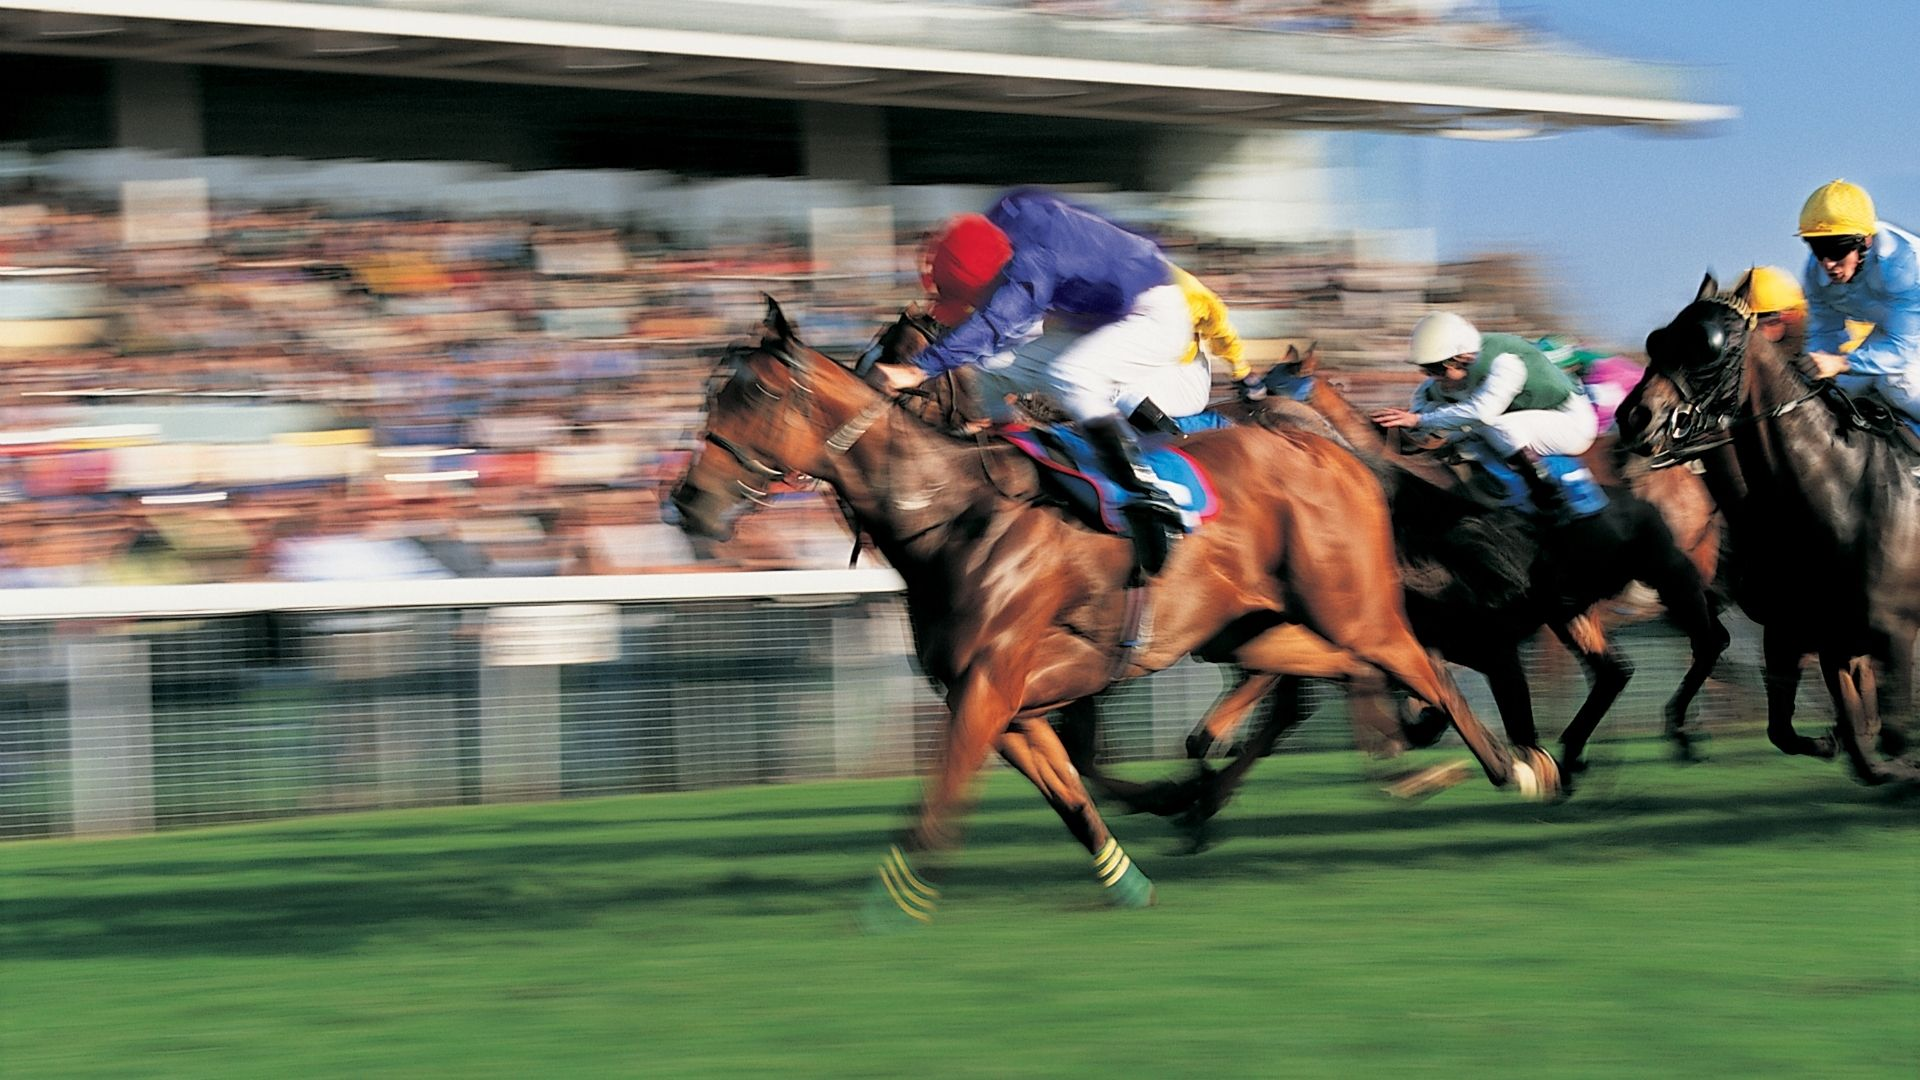 When Can We Expect Horse Racing To Return To Normal Seethru